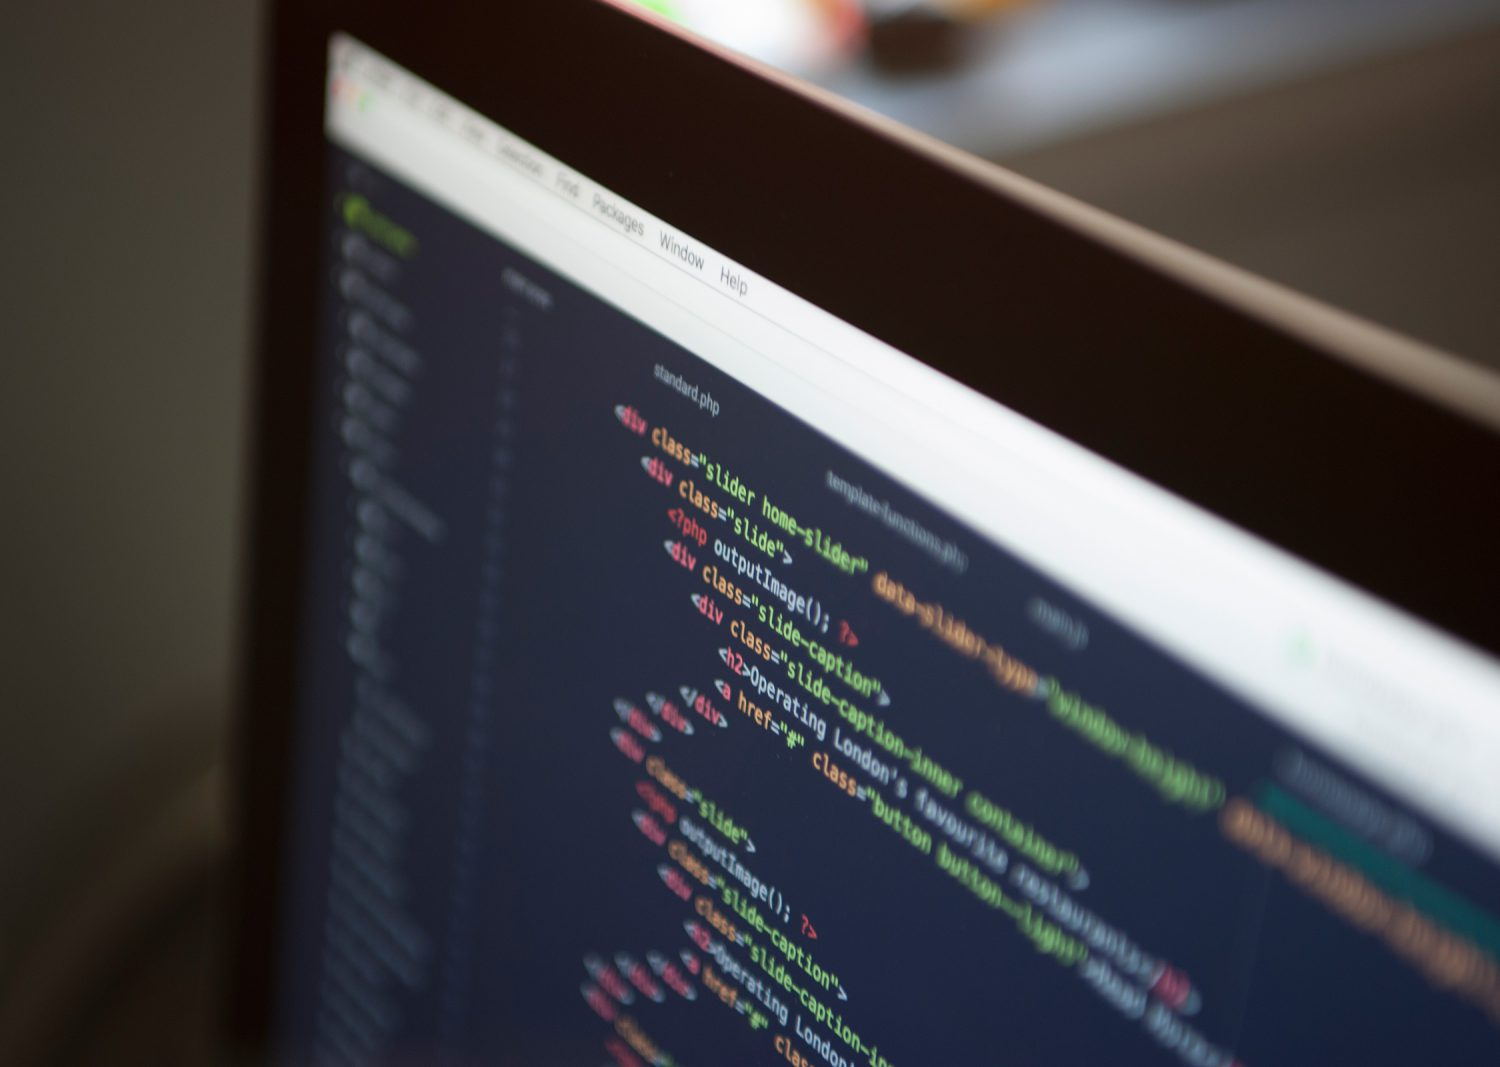 On Screen Close Up of A HTML Code